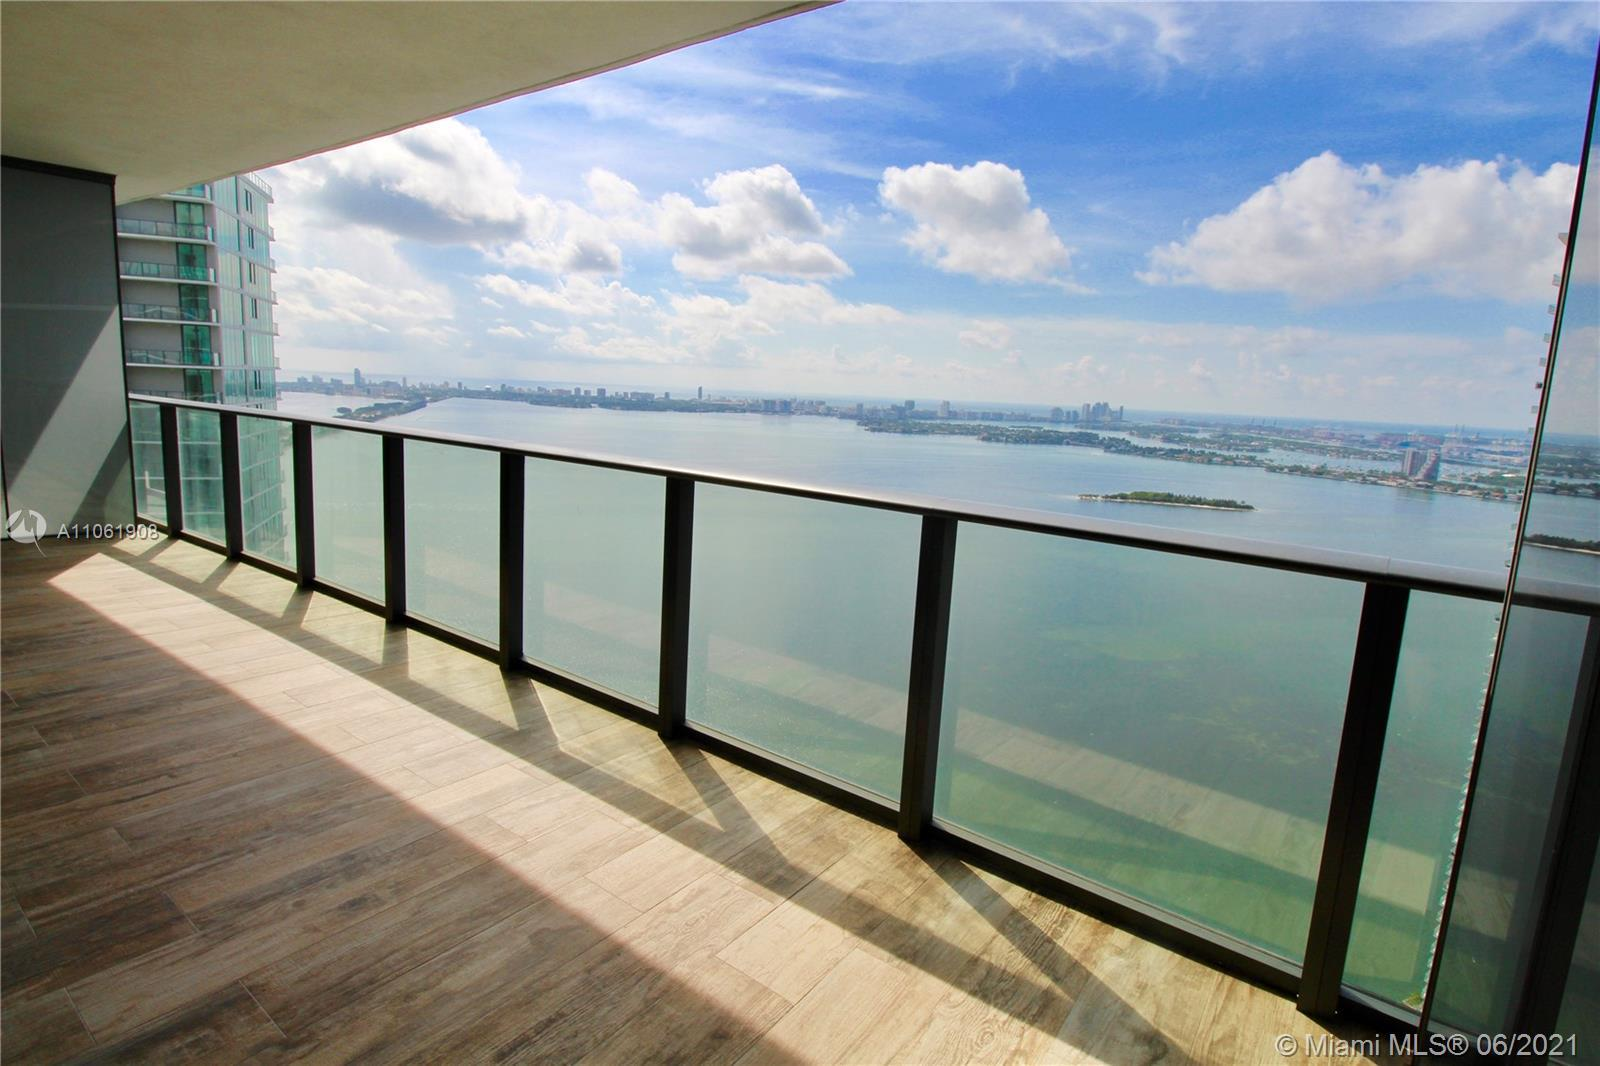 Amazing apartment of 1 bedroom and 2 bathrooms located in the trendy Edgewater neighborhood of Miami